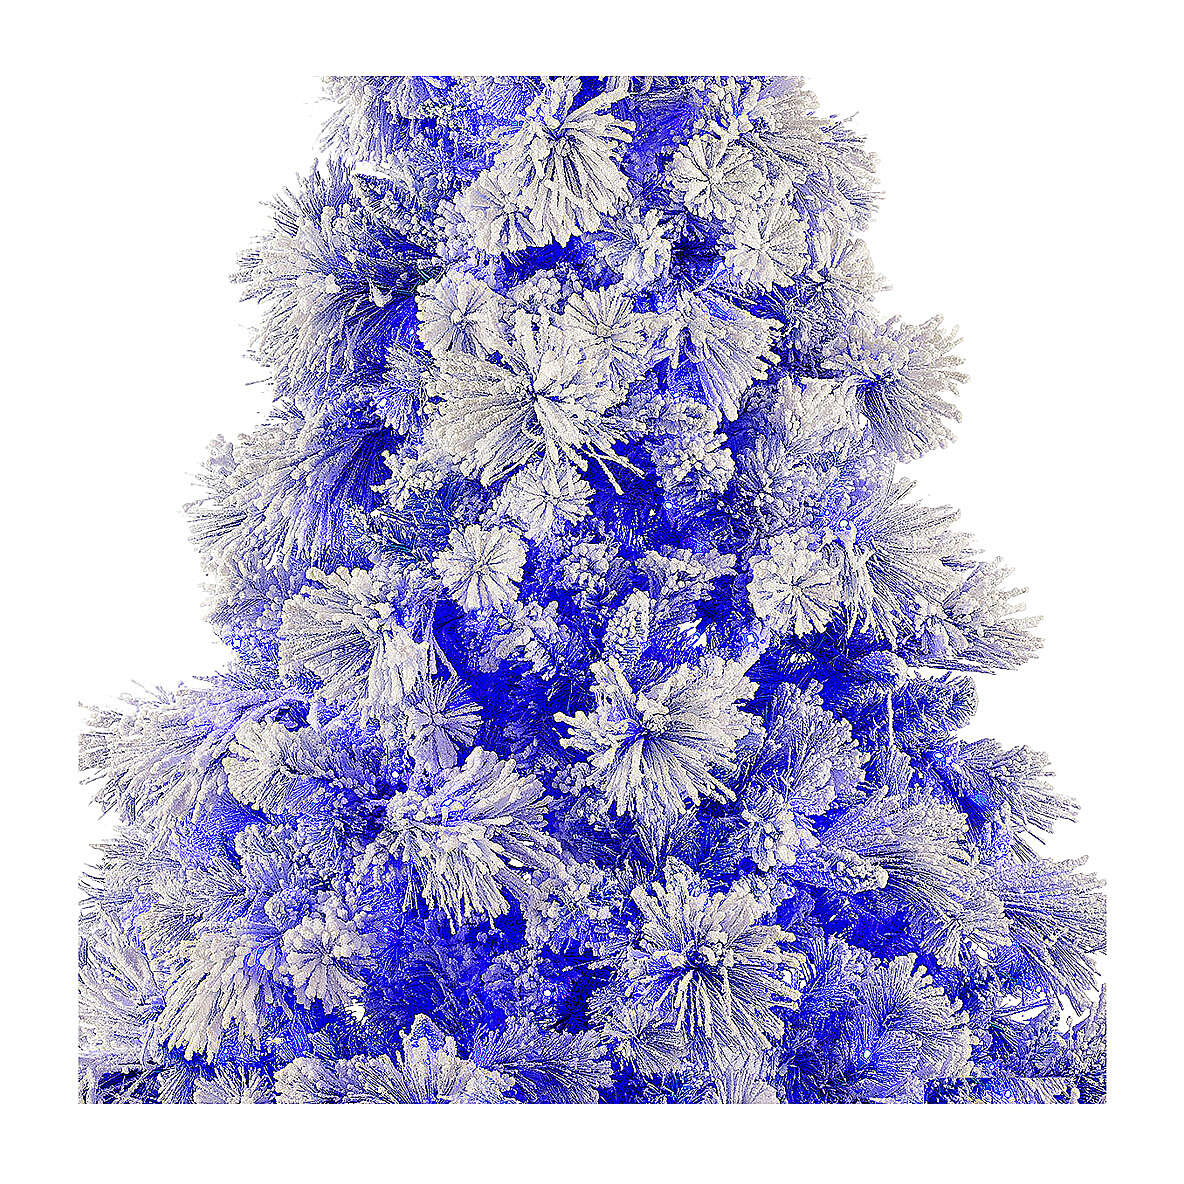 STOCK Albero di Natale 200 cm Virginia Blue innevato 250 led interno 3